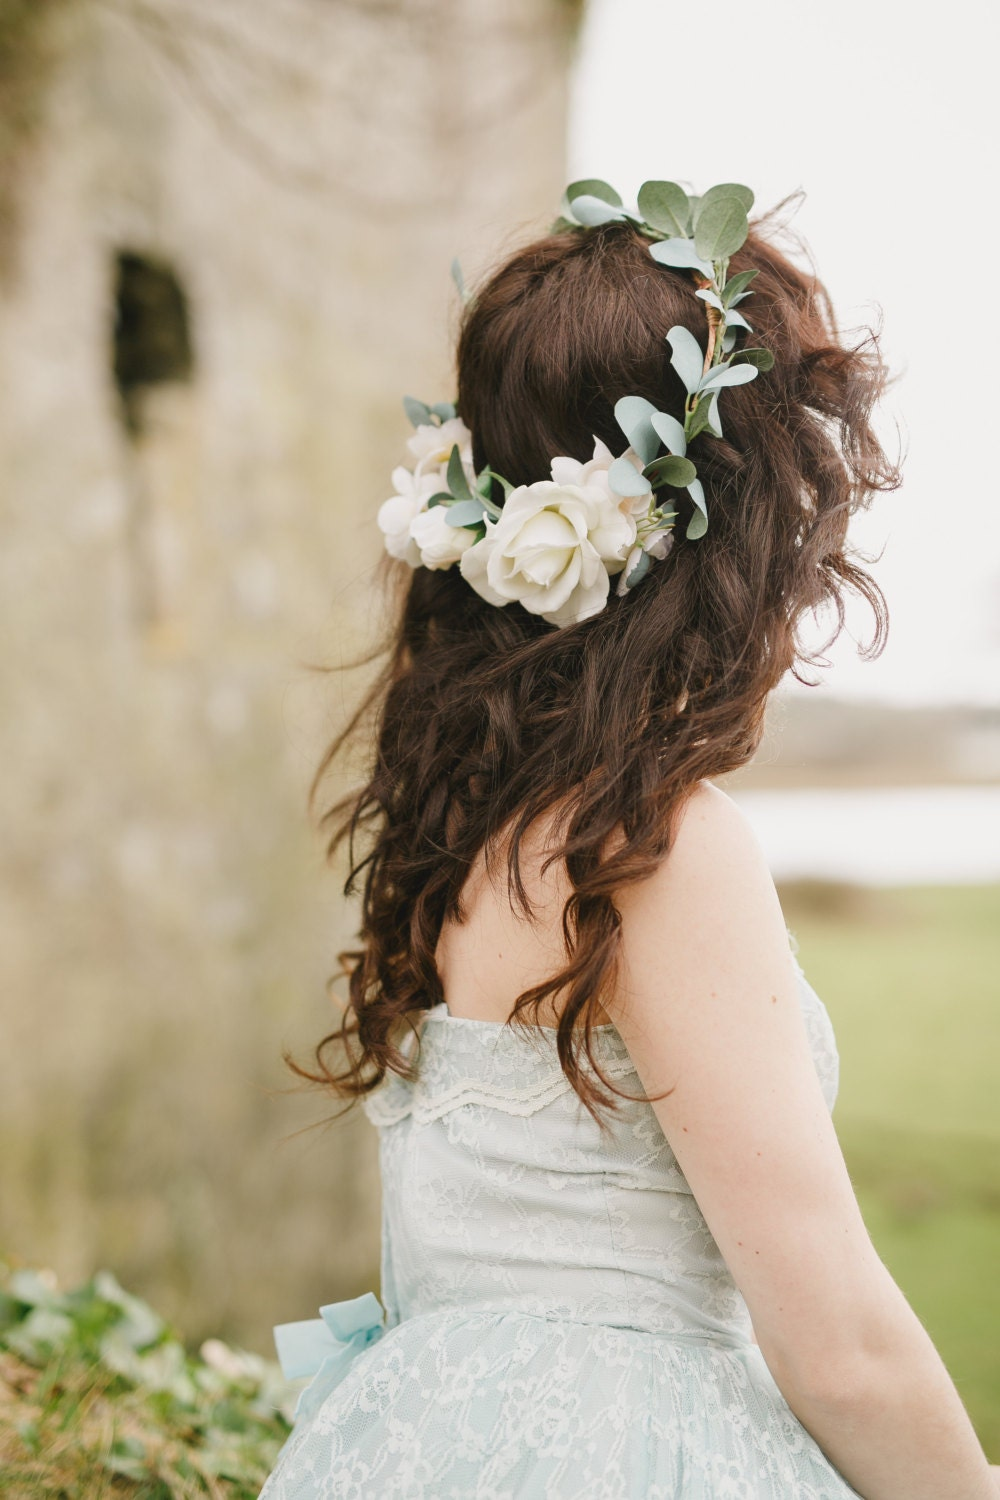 Wedding flower crown tumblr wedding flower crown tumblr jak dobra wedding flower crown tumblr sienna flower crown created with ivory and cream roses izmirmasajfo Image collections